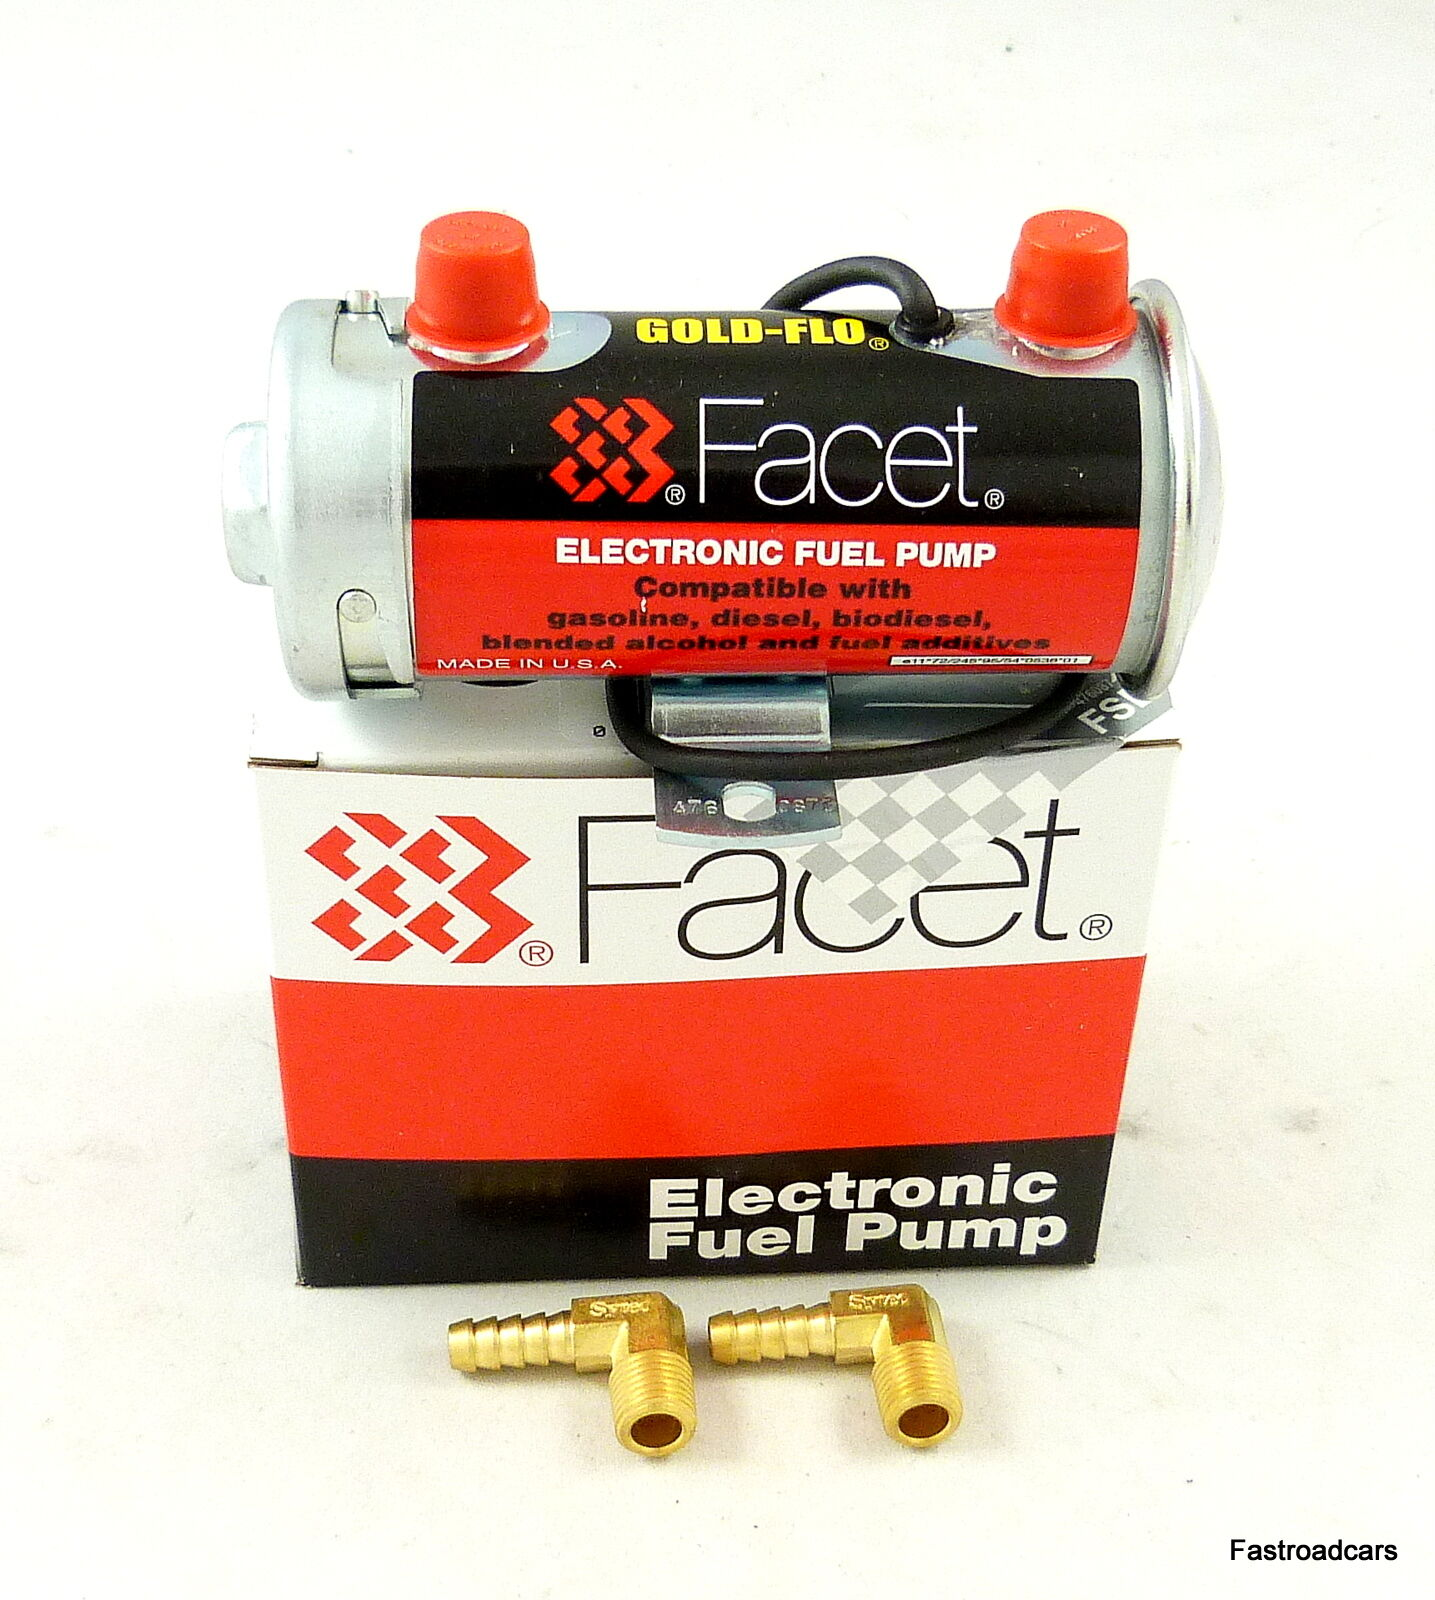 Fuel Pump Genuine Facet Red Top 480532e Comp Use 200 Bhp New With Filters 1 Sur 1seulement 3 Disponibles